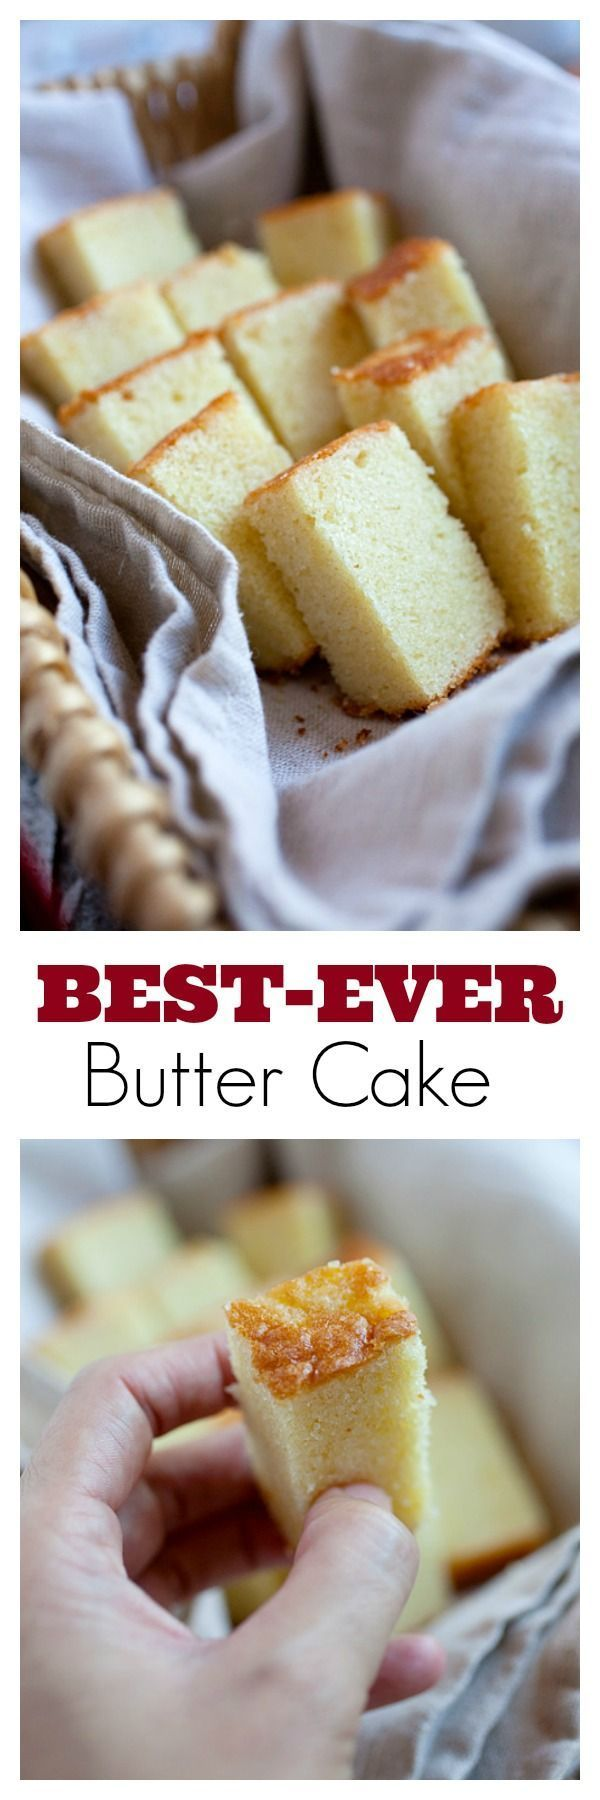 Butter Cake - BEST-EVER rich, loaded, sweet, extremely buttery butter cake. The only butter cake recipe you need, must try | rasamalaysia.com